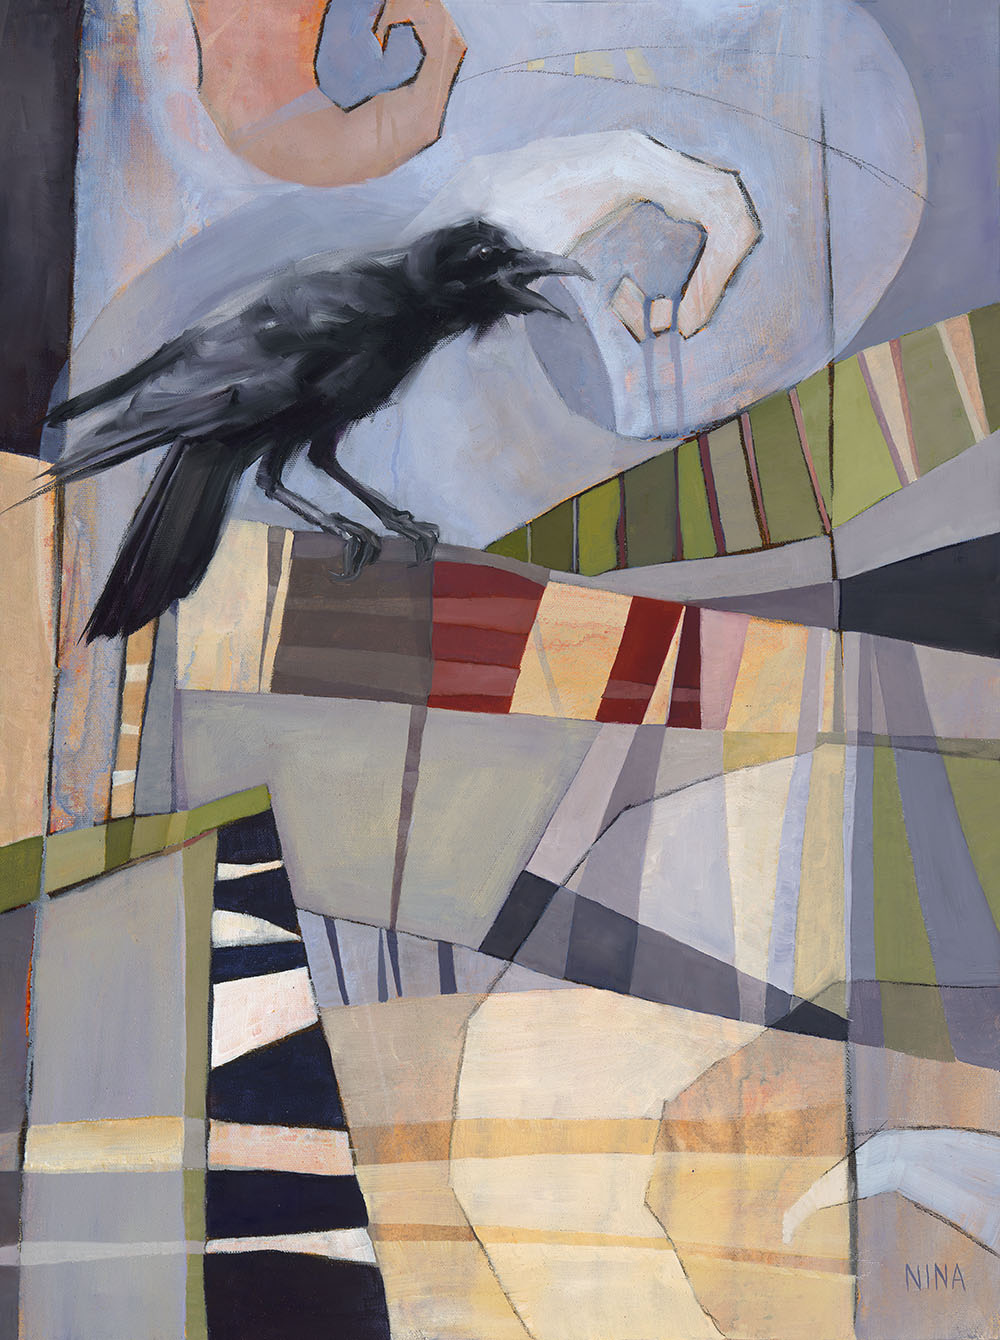 Painting of a crow on an abstracted geometric background.